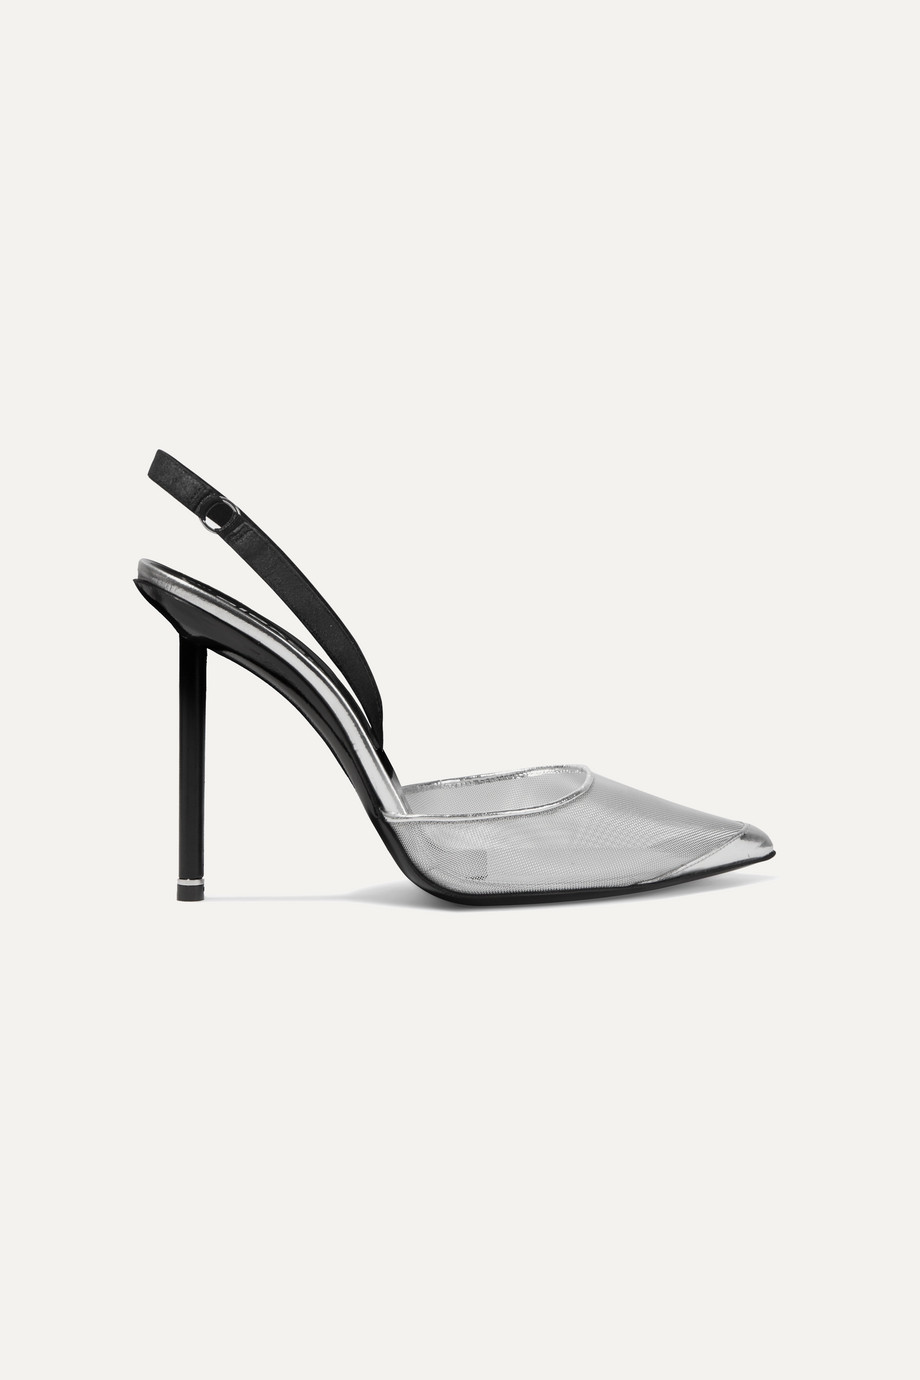 Exact Product: Kylie Jenner Transparent Pumps 2019, Brand: Alexander Wang, Available on: net-a-porter.com, Price: $650